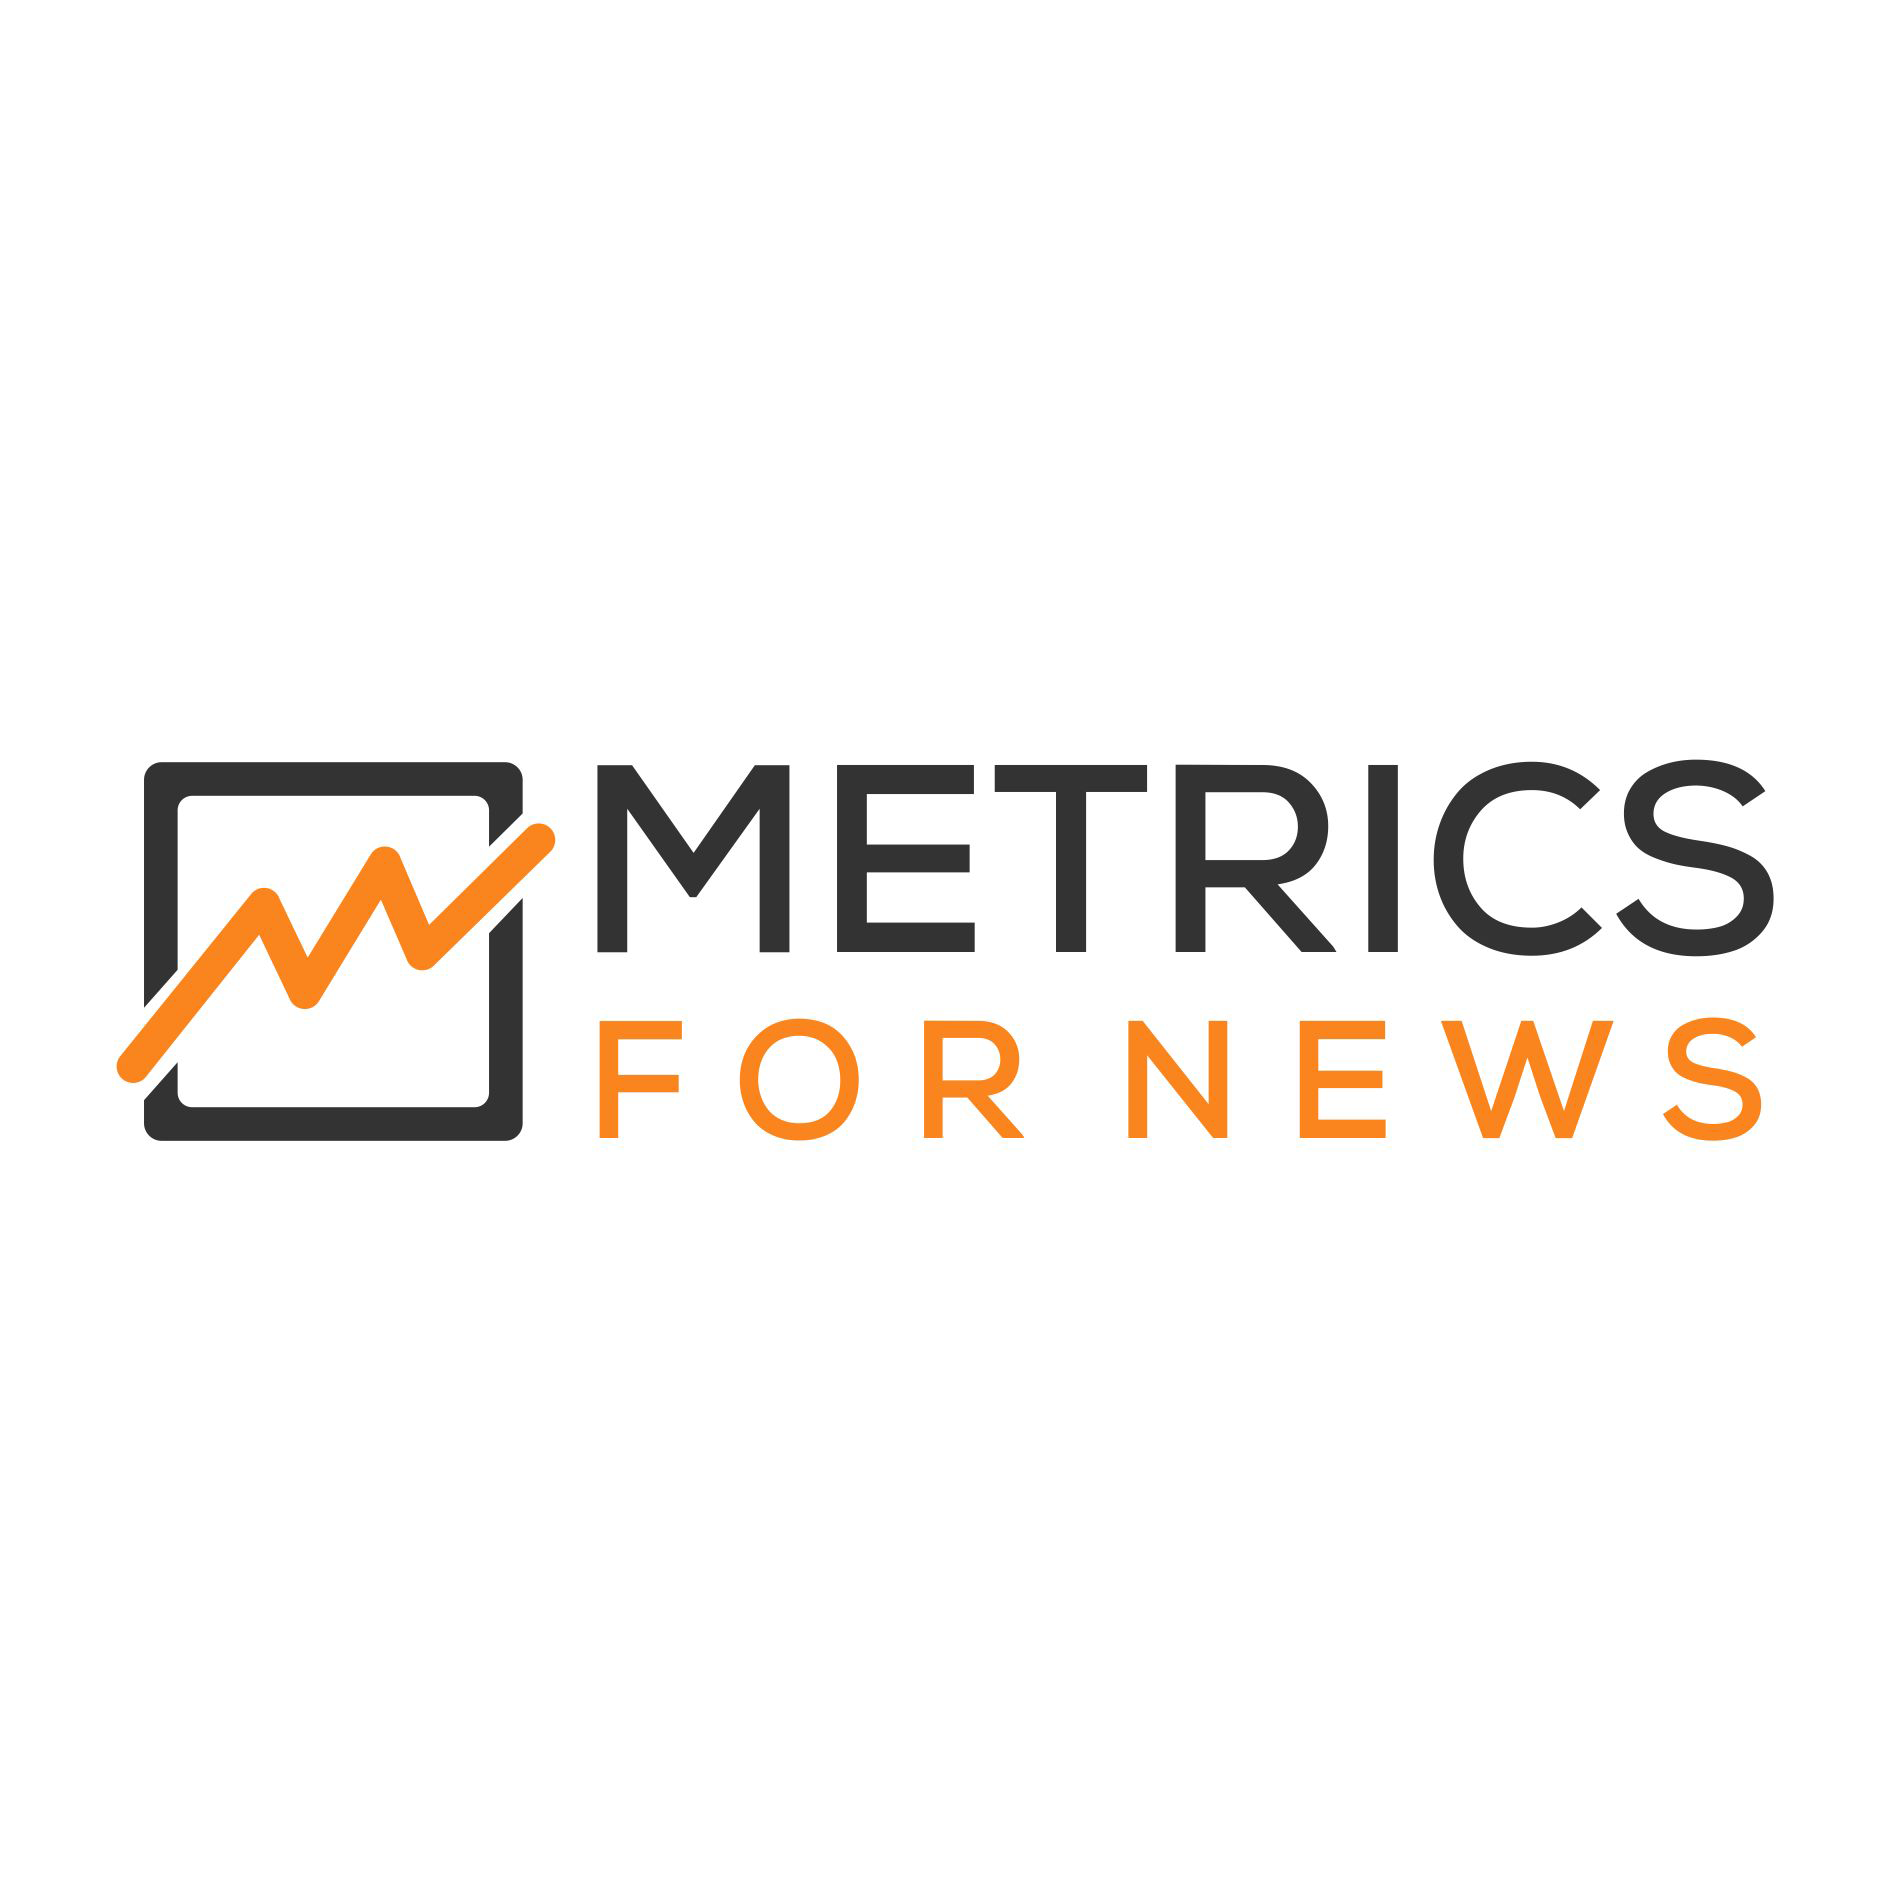 Metrics for News enables newsrooms to act on analytics, engage new audiences and grow reader revenue